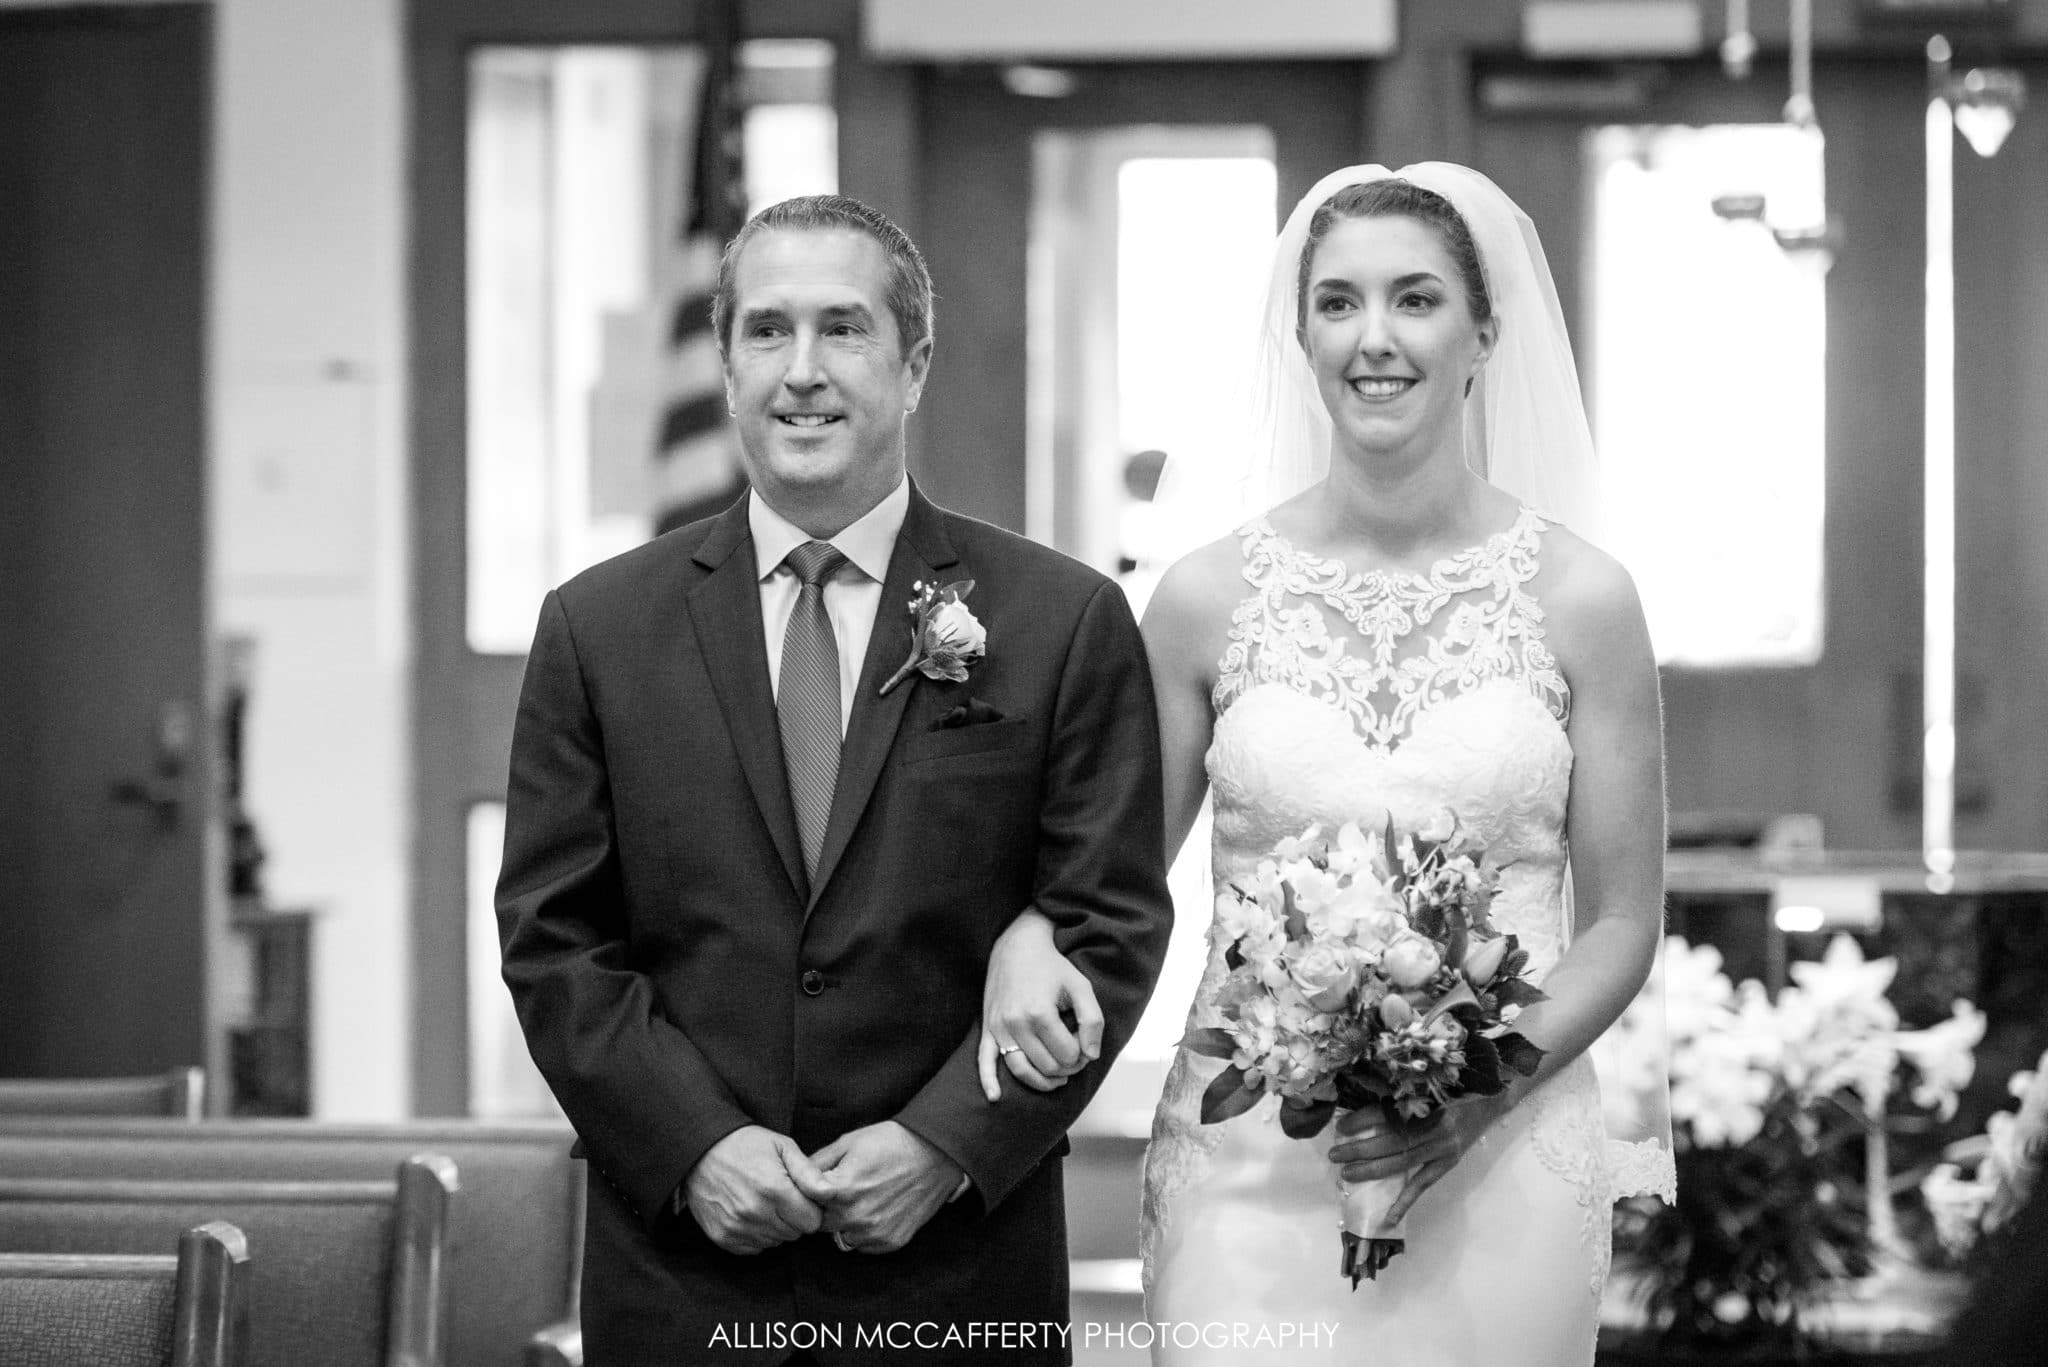 Father and daughter walking down the aisle on her wedding day.